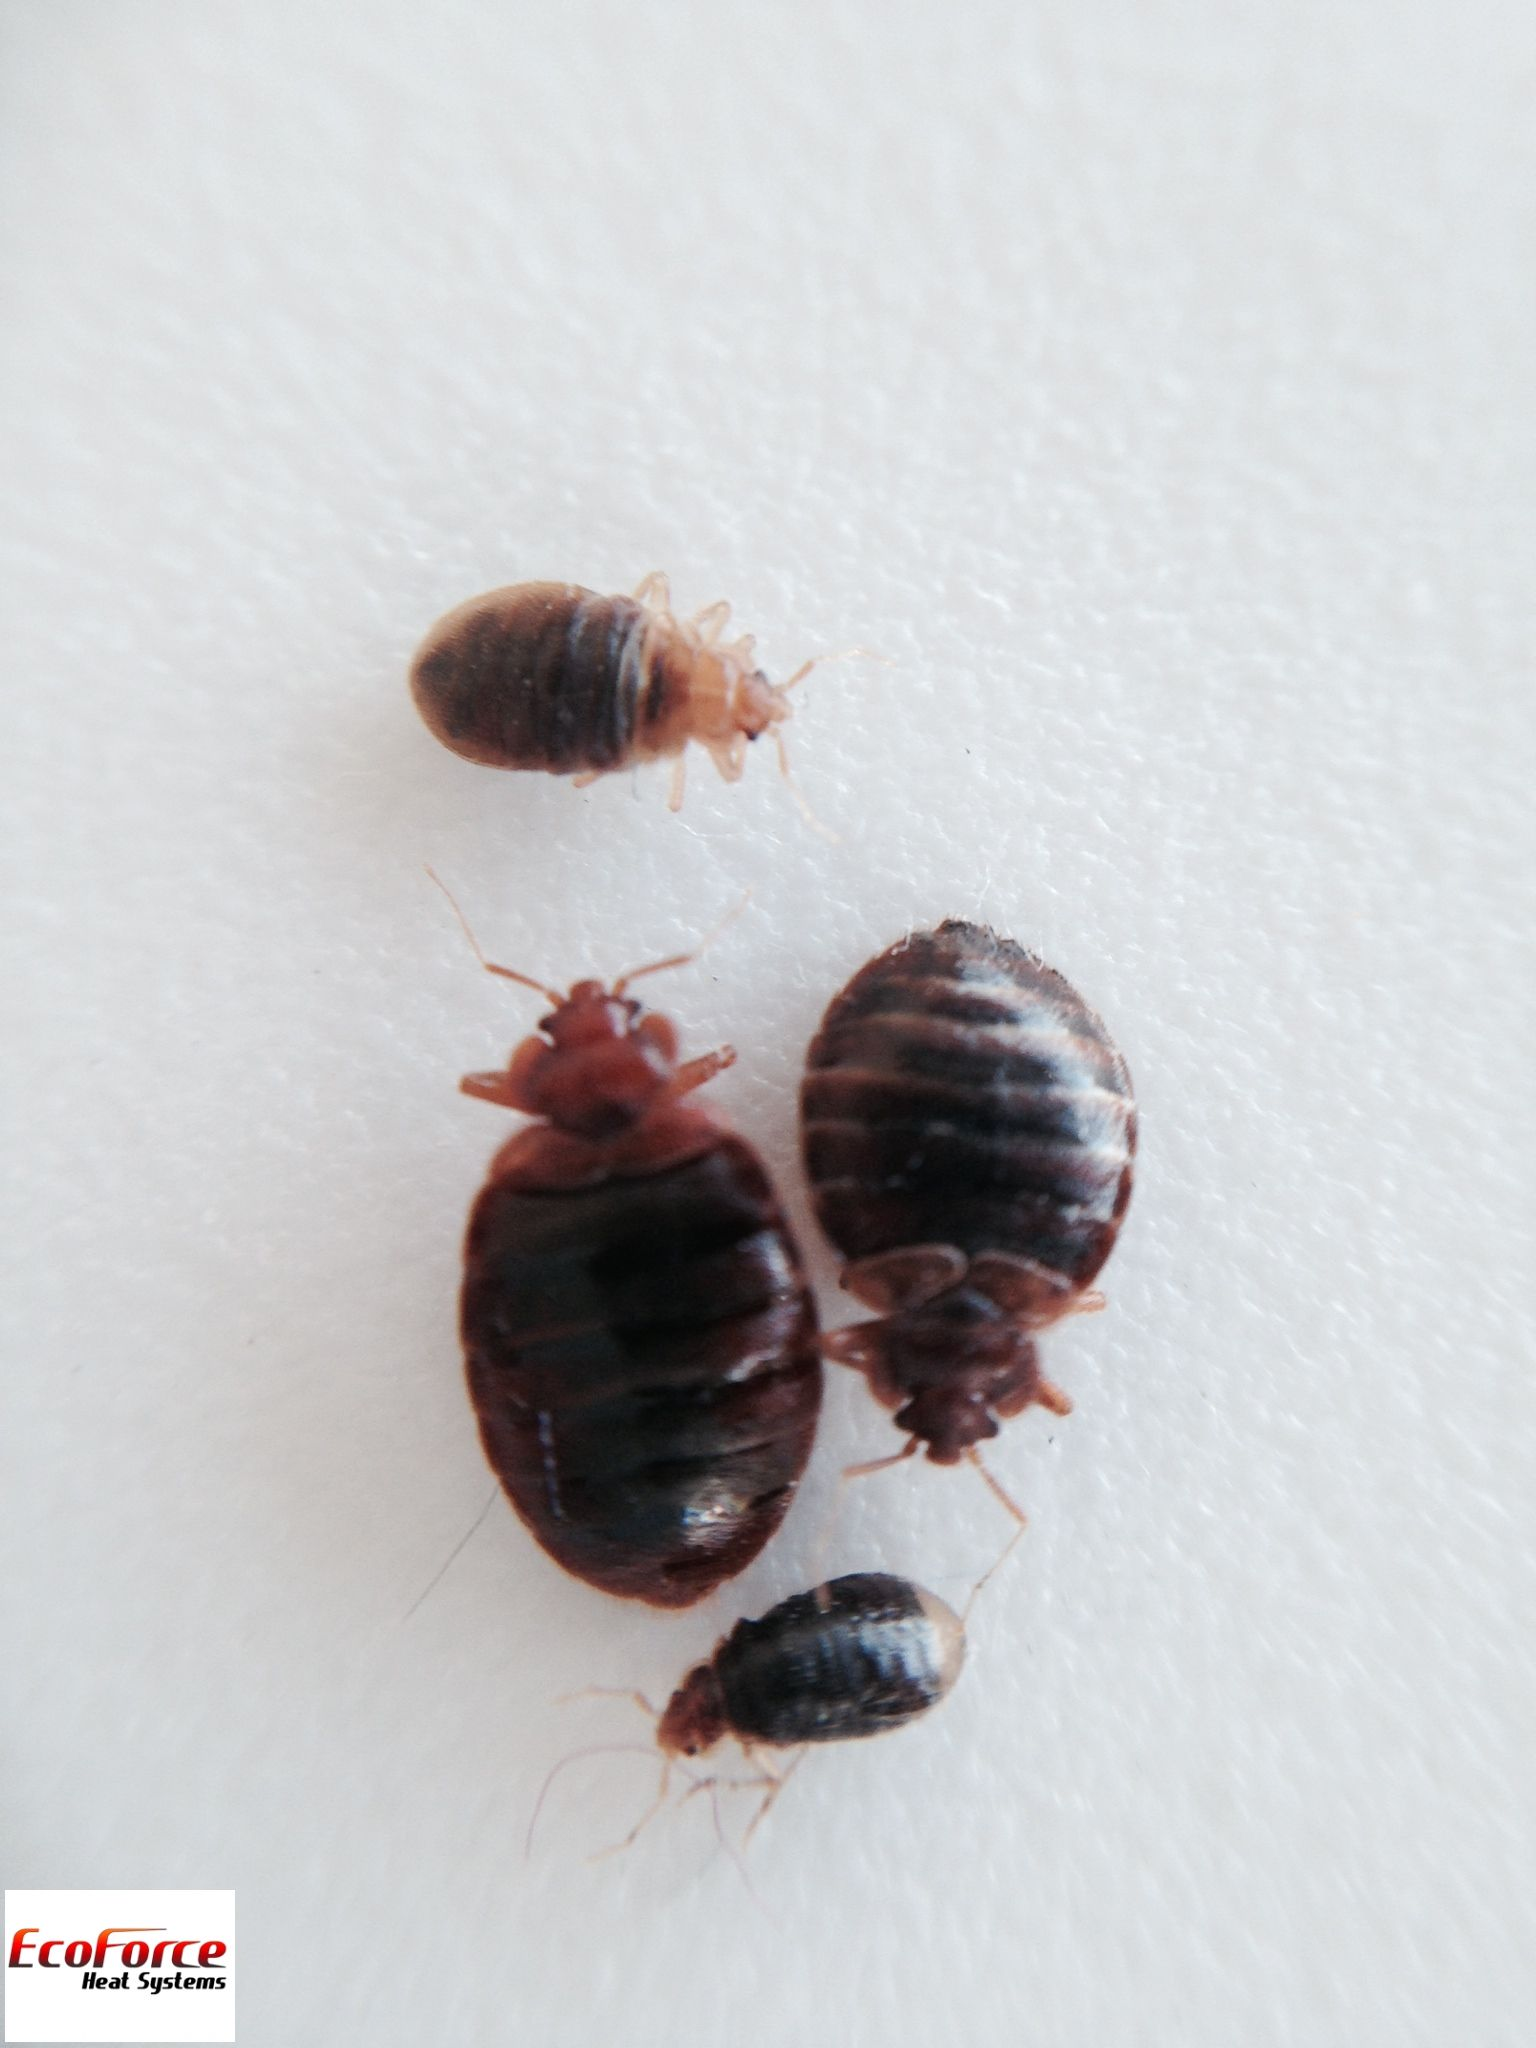 Bedbugs up close Bed bugs, Bed, Bugs